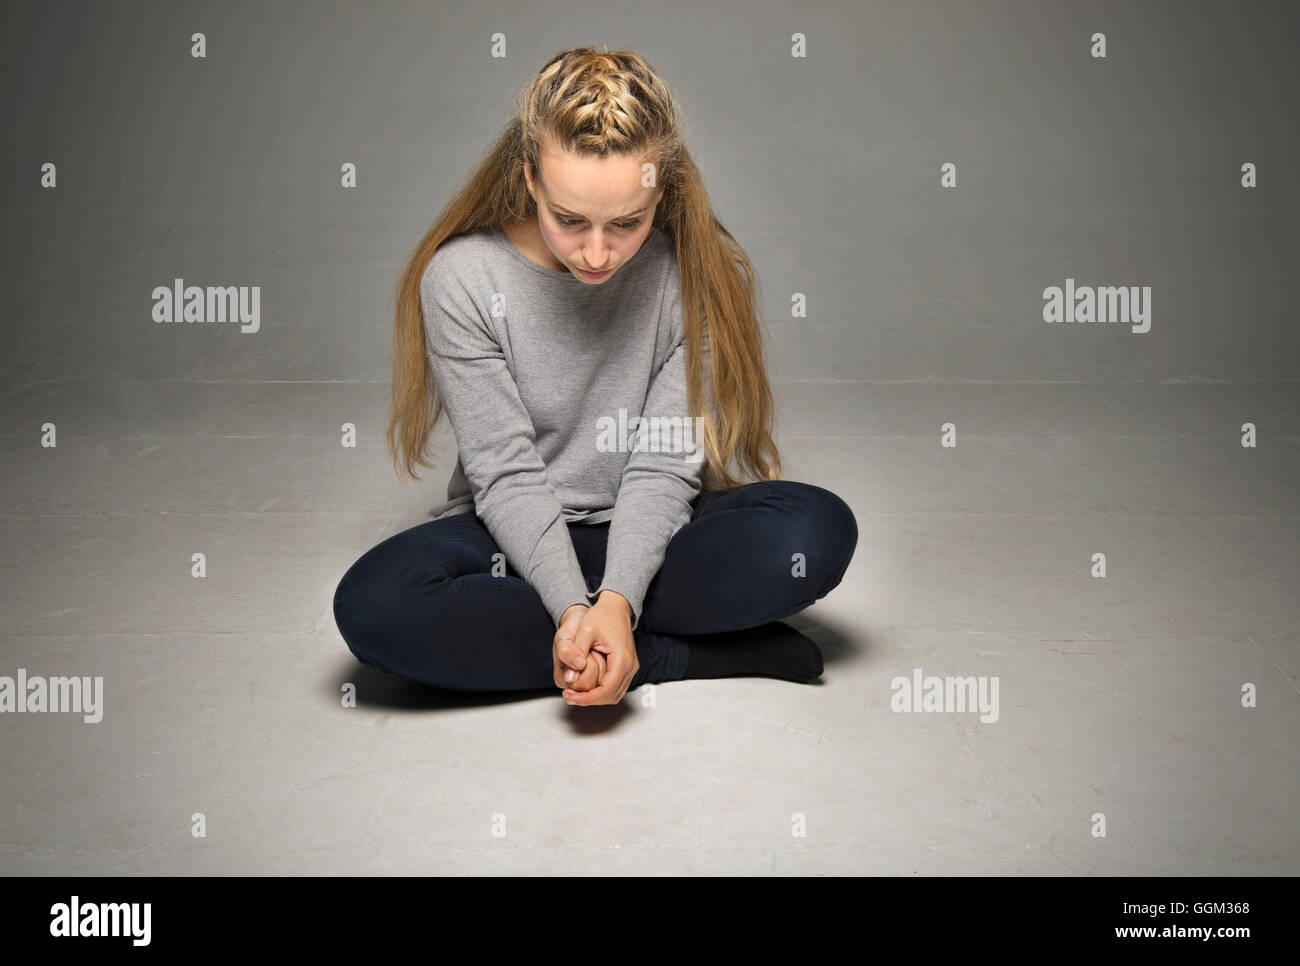 Sad young woman sitting in empty room on floor legs crossed hands tightly clasped in front looking down - Stock Image